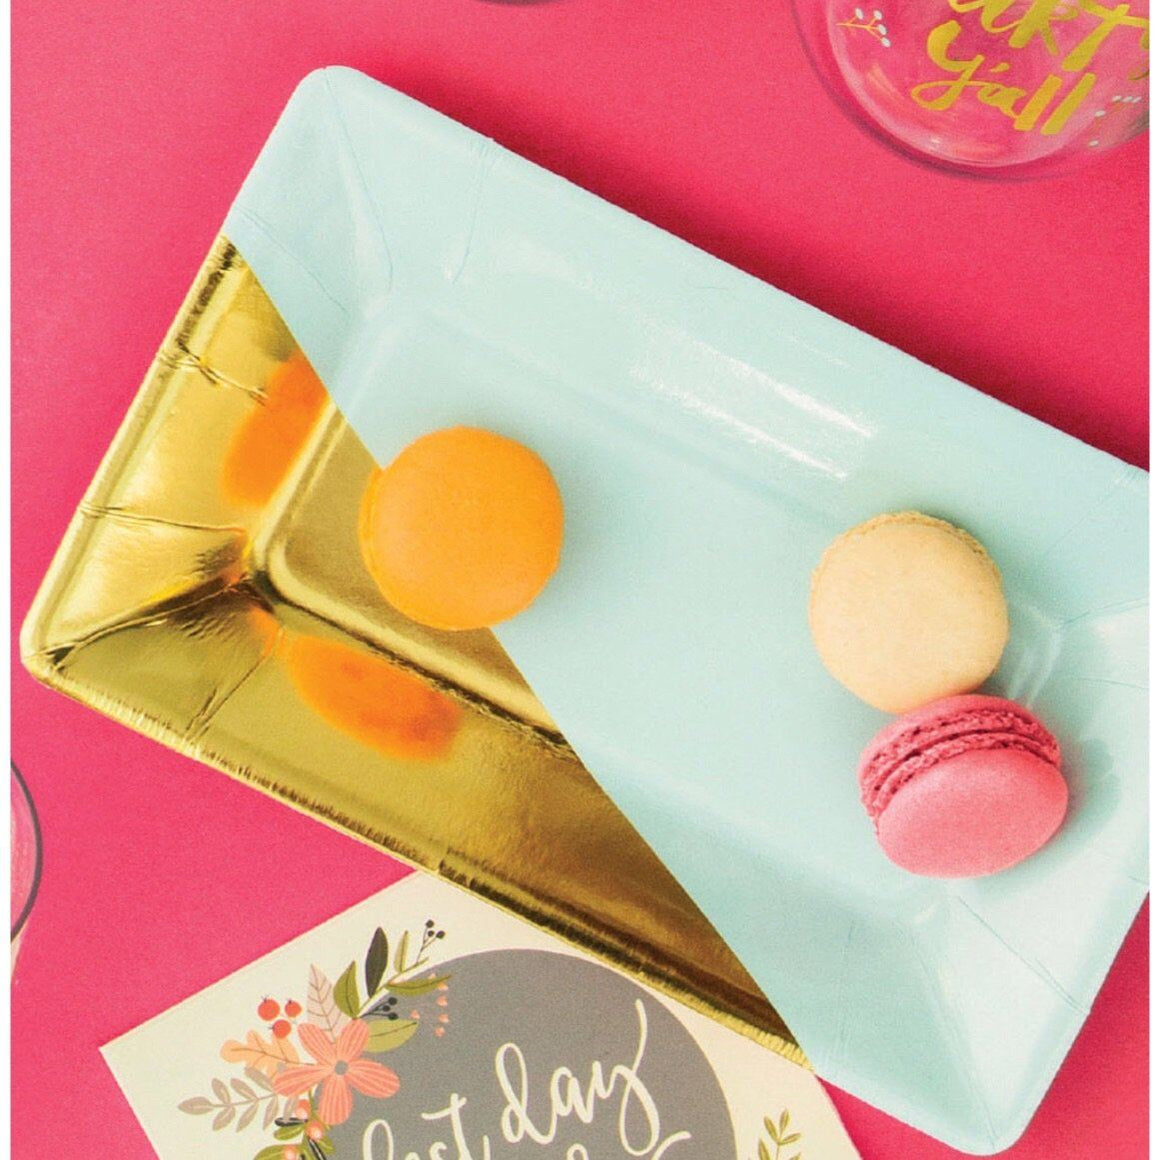 PLATES - SMALL RECTANGULAR MINT GOLD